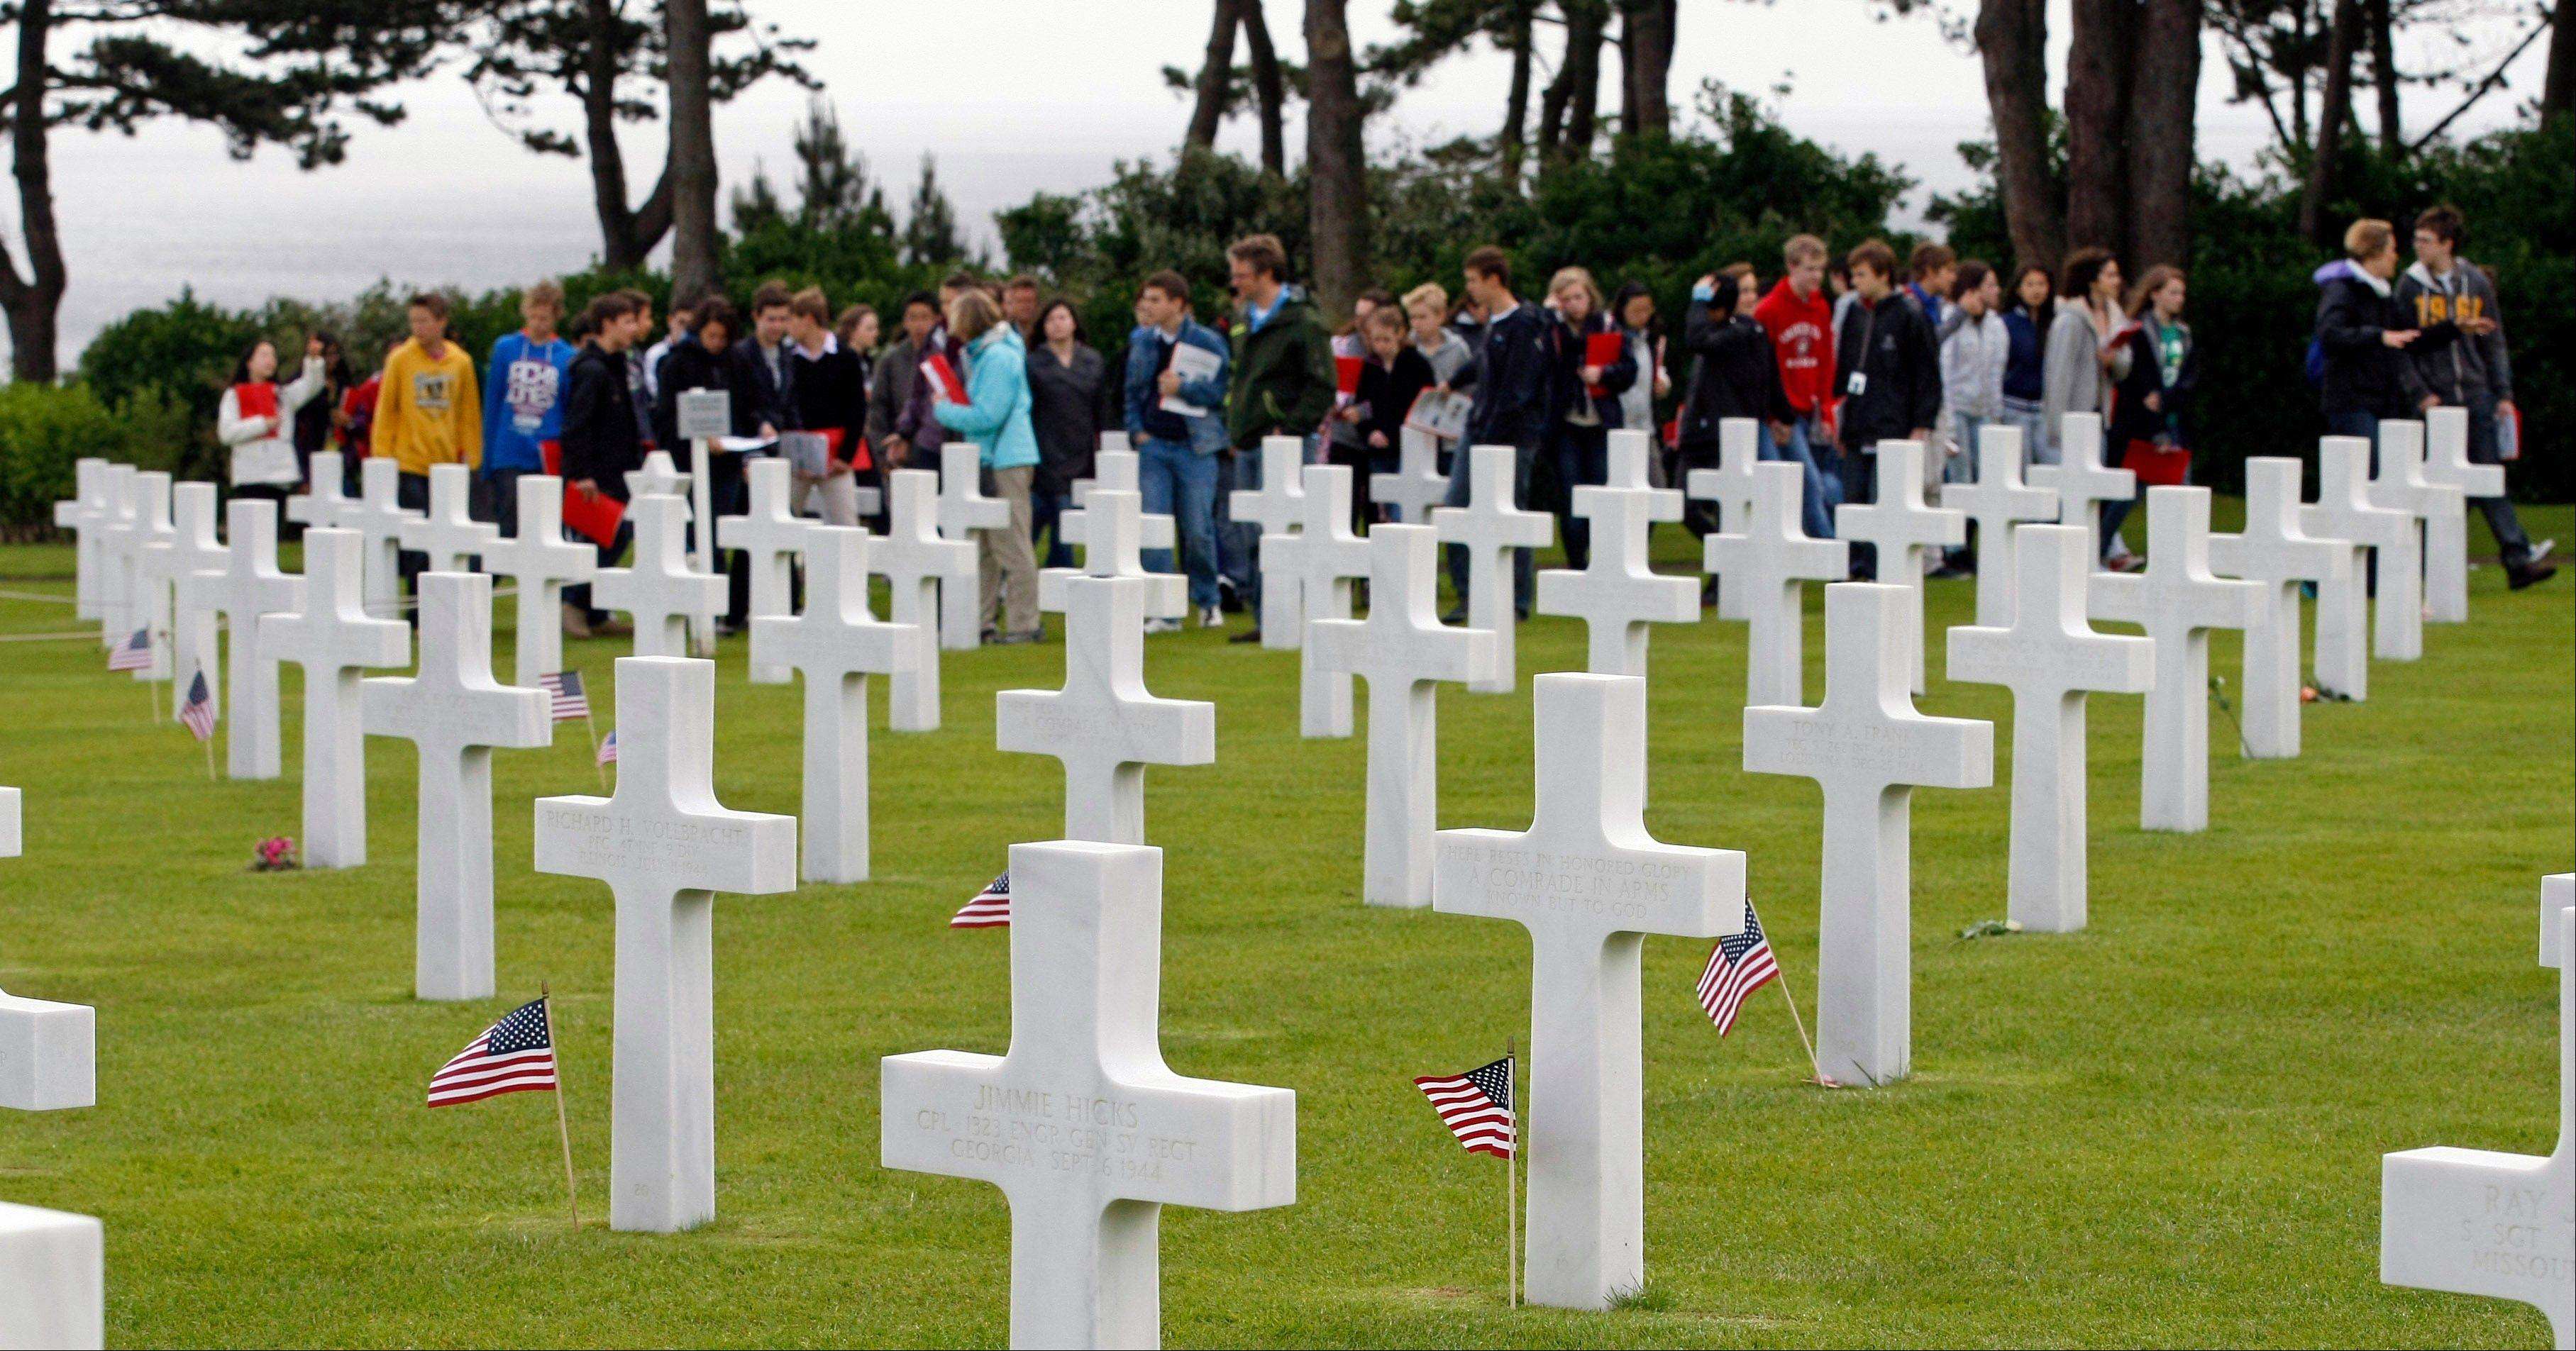 Youngsters walk among tombs at the Colleville American military cemetery, in Colleville sur Mer, western France, Wednesday June 6, 2012, during the commemoration of the 68th anniversary of the D-Day.